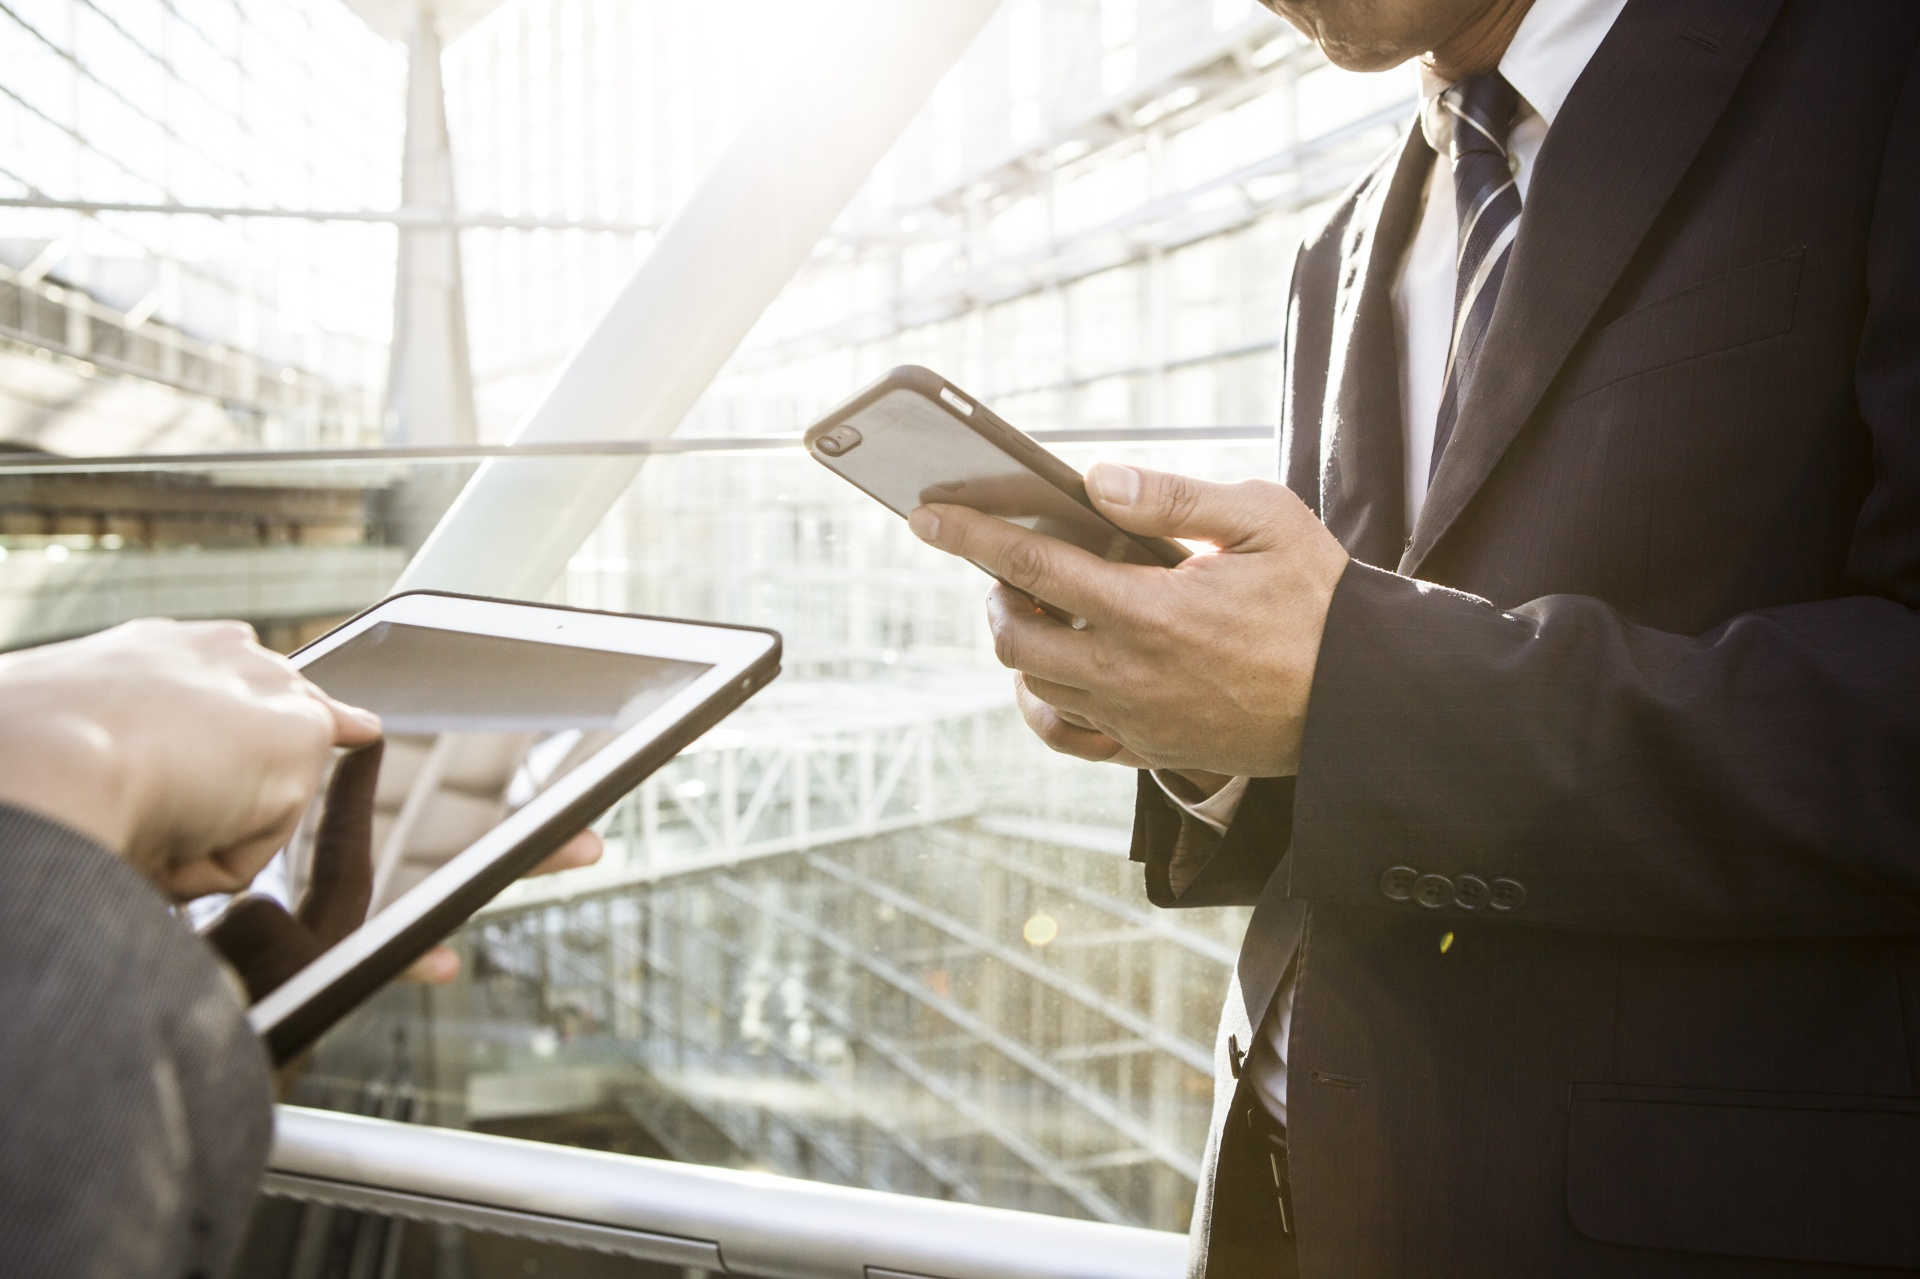 Businessmen are using the new mobile phone